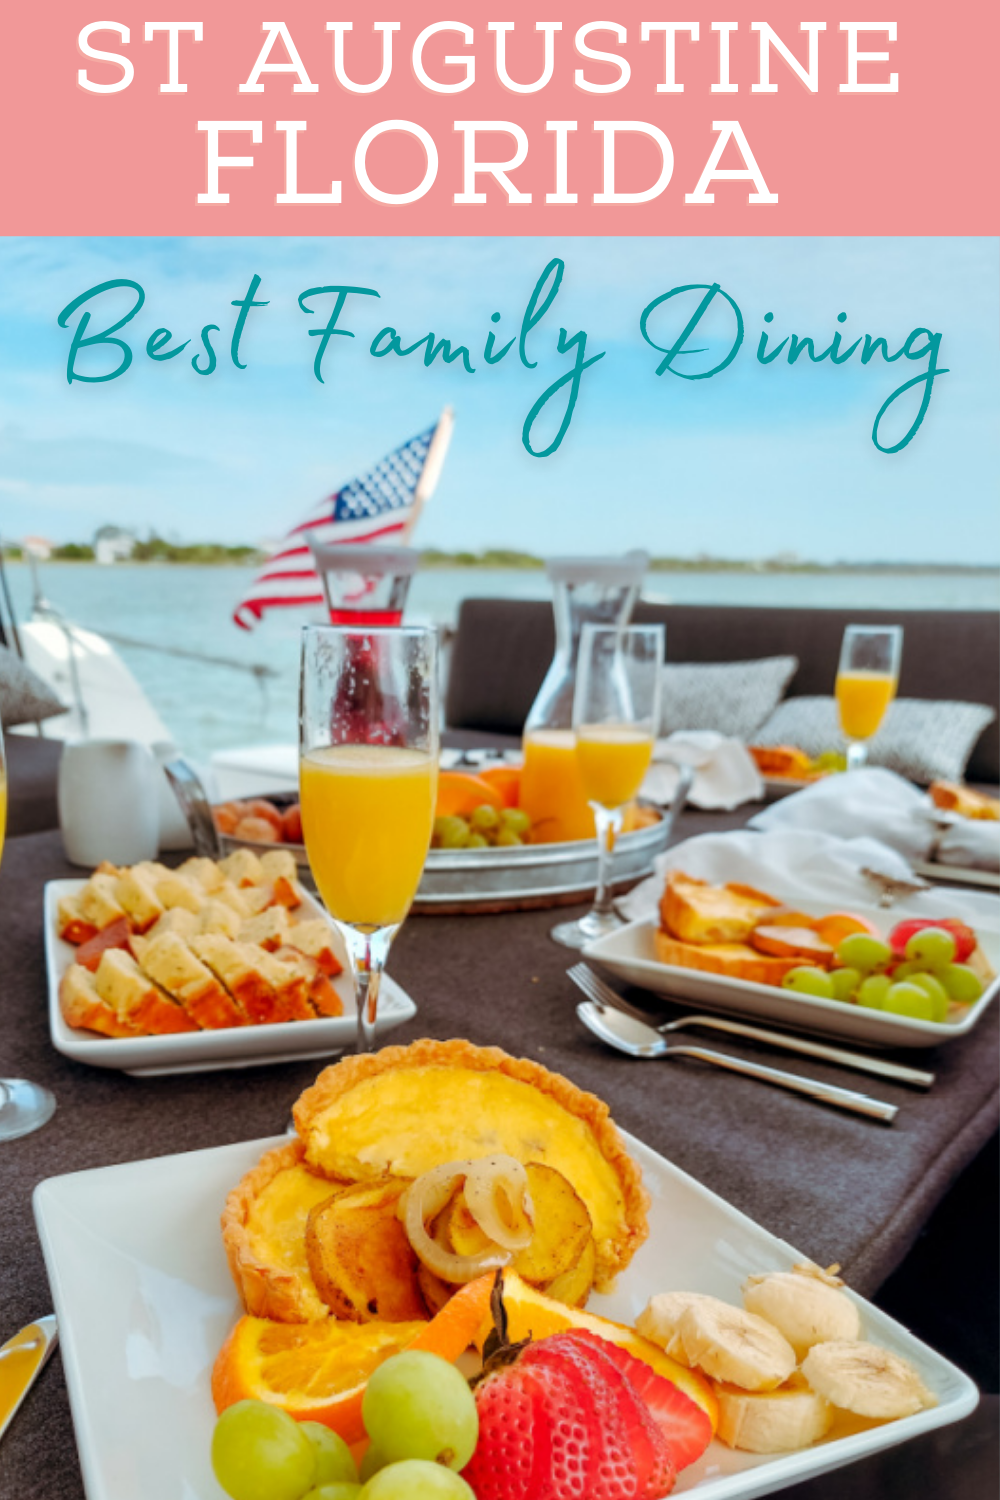 pin with text st augustine best family dining and image of a brunch set up on a boat